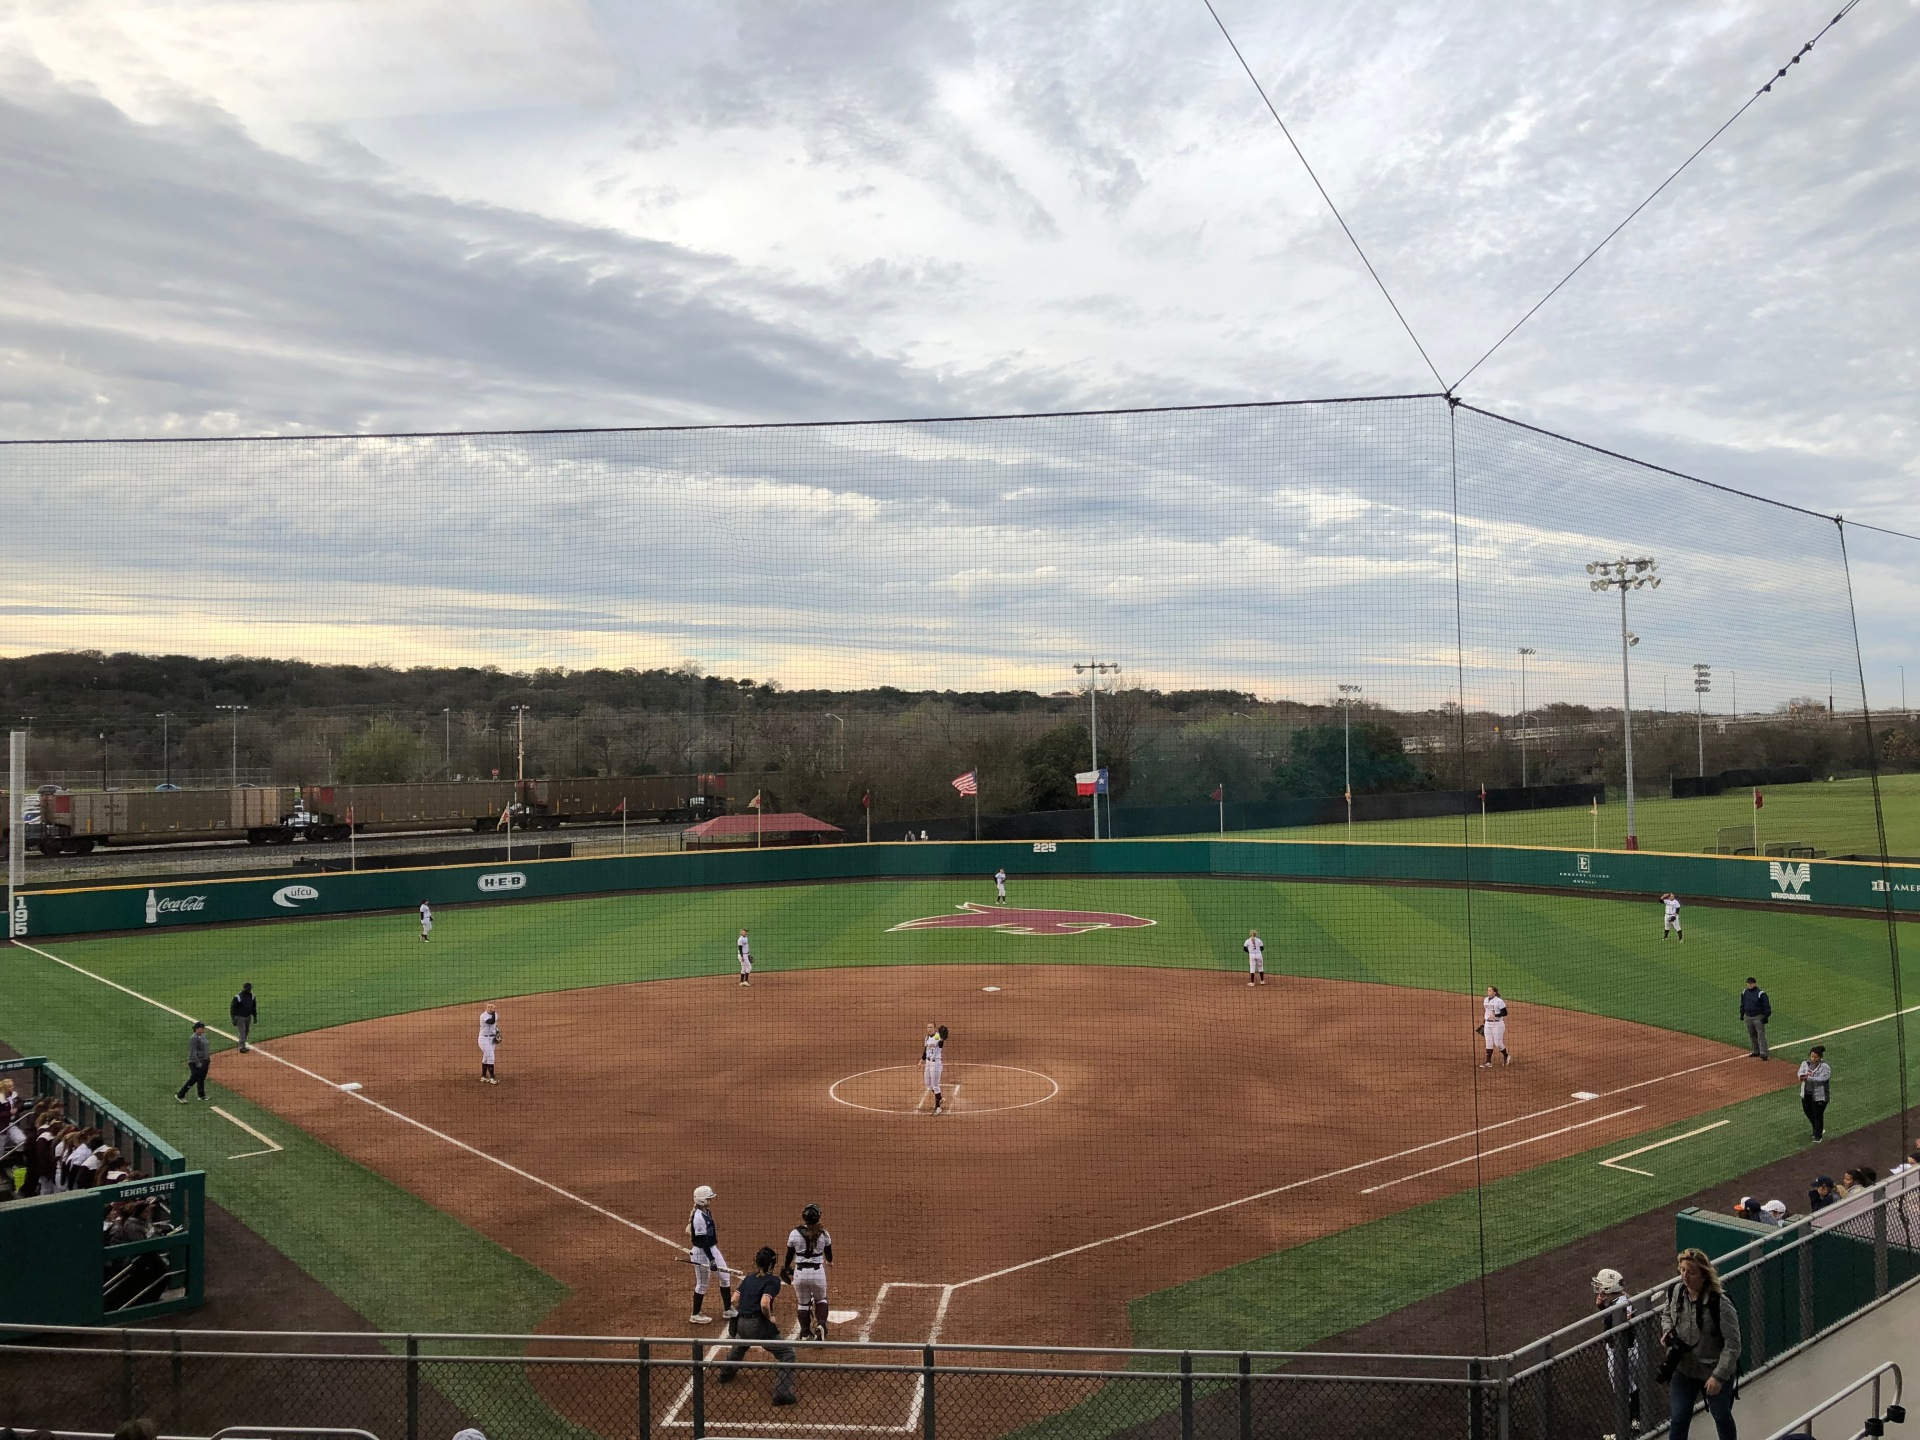 A wide shot of the Bobcat baseball stadium with players on the field.